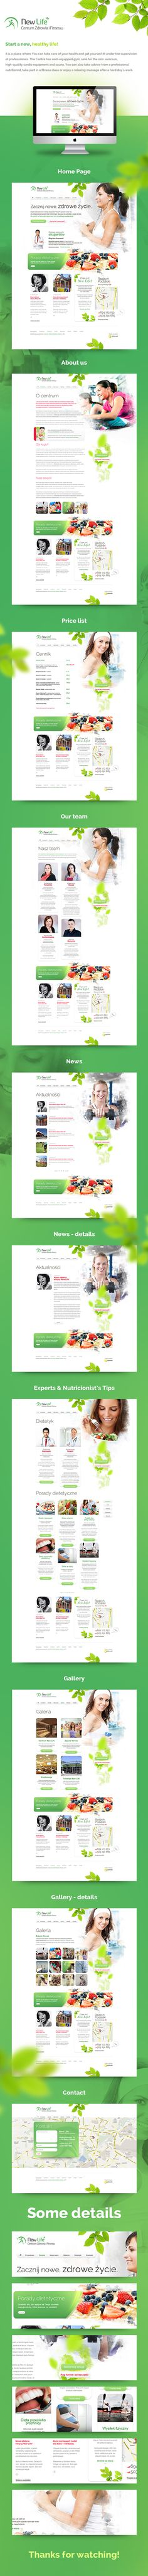 New Life - Health and Fitness Center by Michal Straczek, via Behance